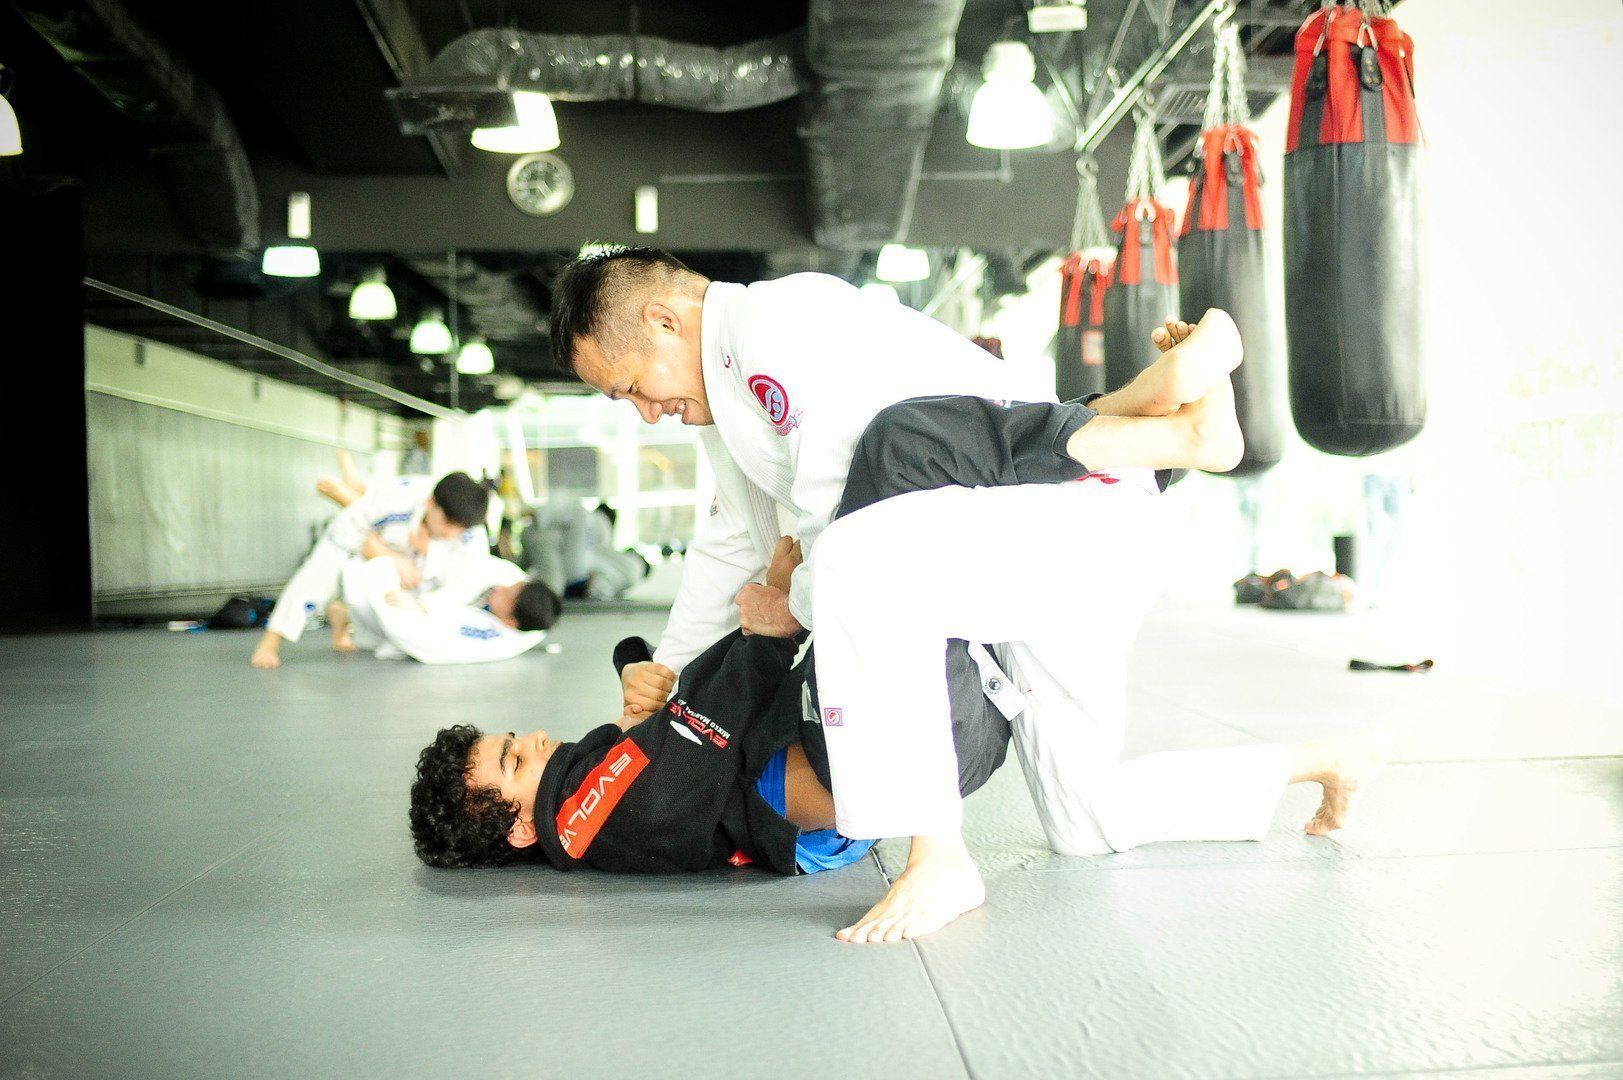 BJJ is designed to enable a smaller person to overcome a bigger, stronger opponent.